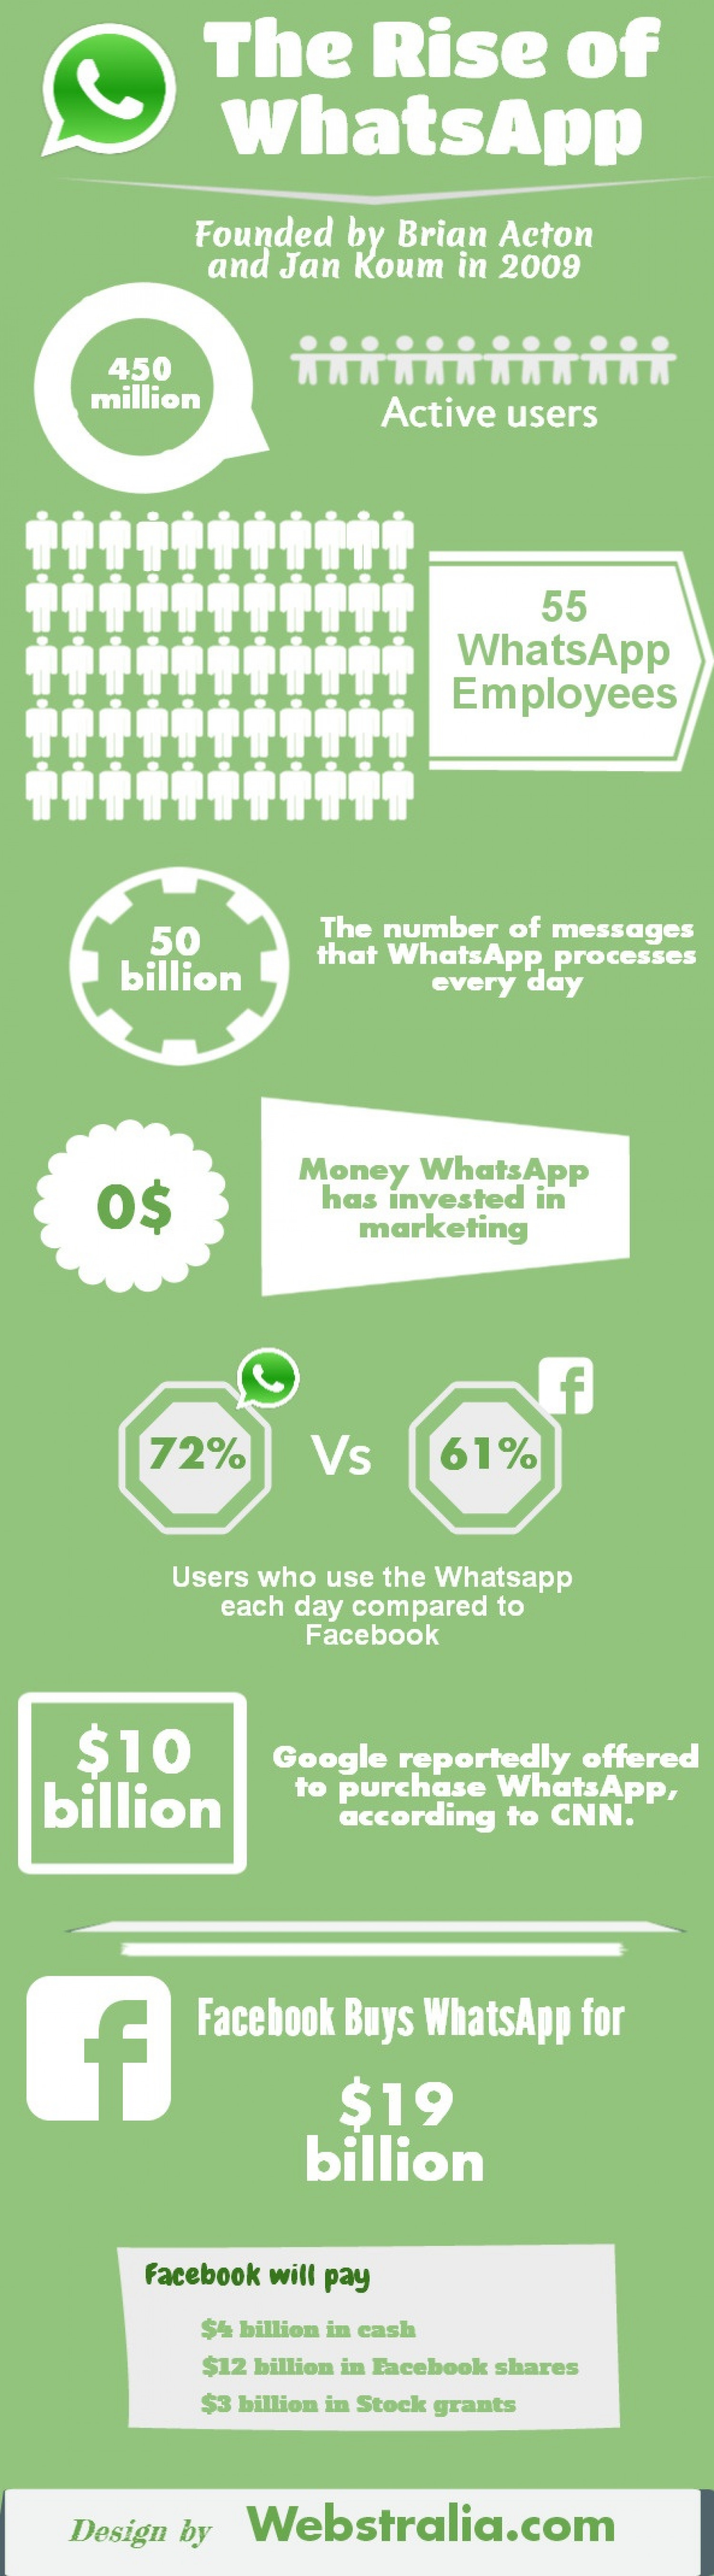 The Rise of WhatsApp - Infographic Infographic